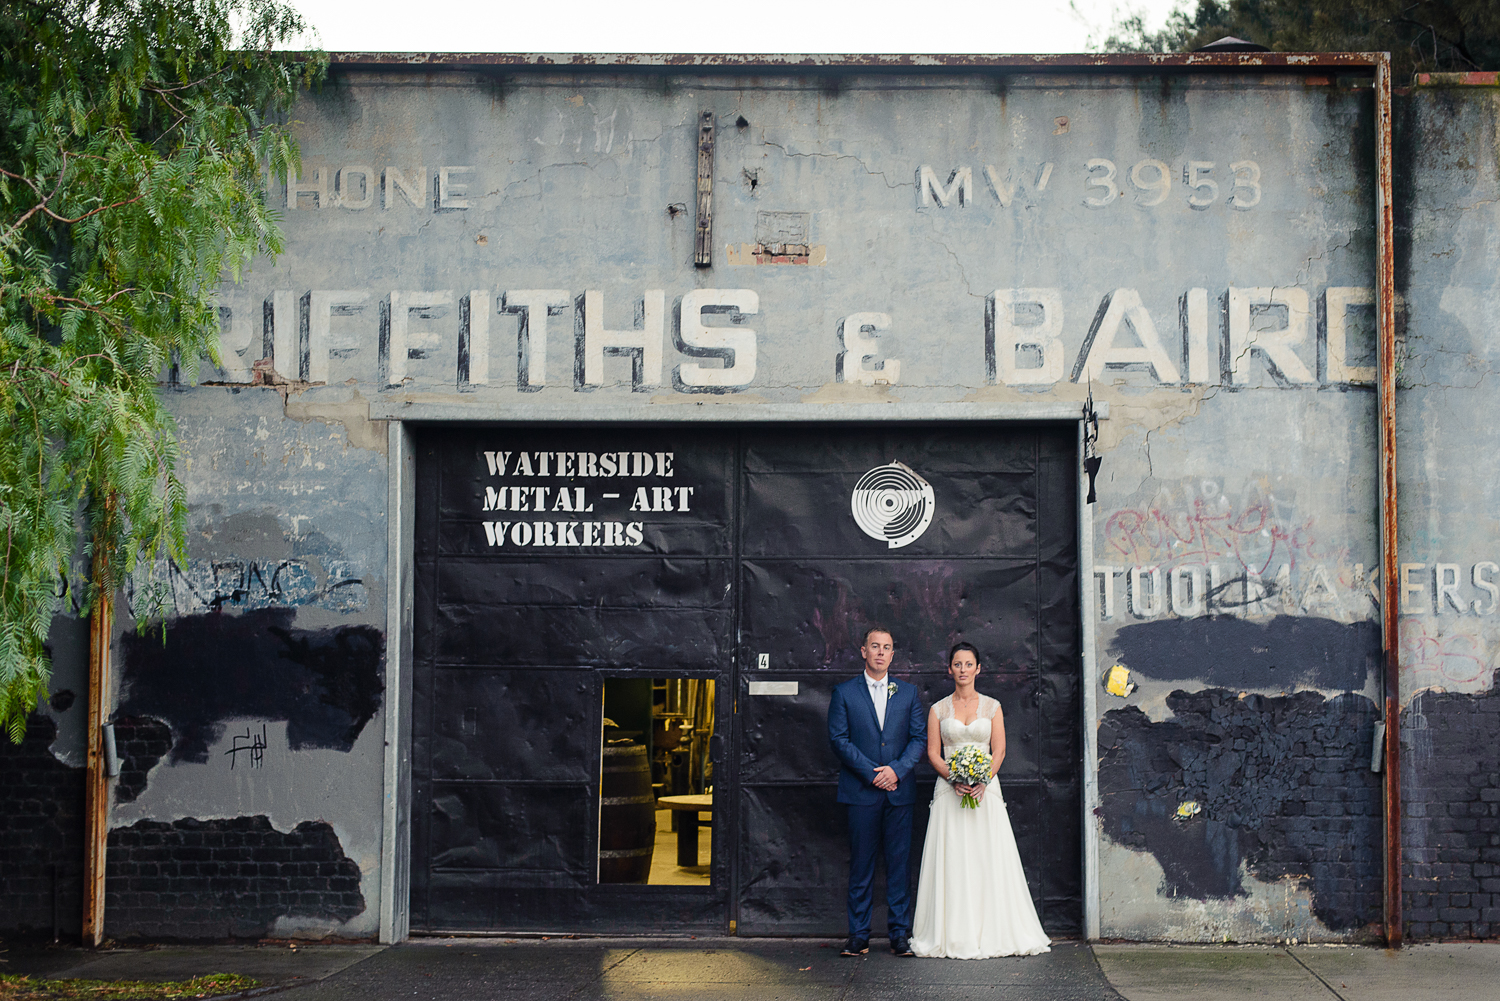 Melbourne-wedding-at-the-sub-station-an-old-power-station-Rhapsody-Road-Photography-Emma-Lambe-9.jpg